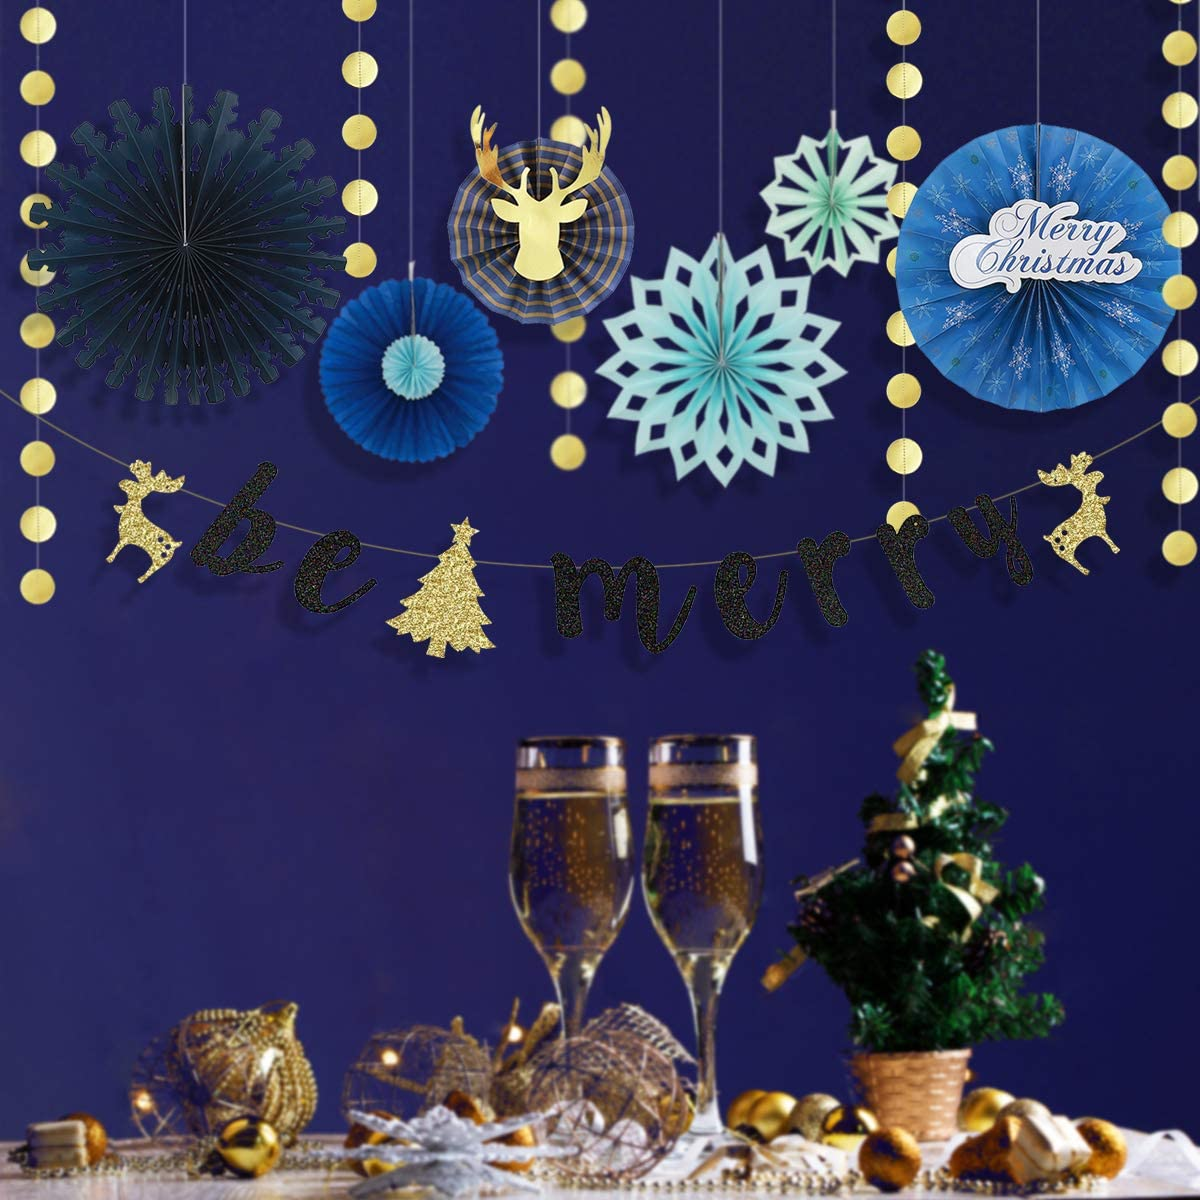 Winter Wonderland Decor PinkBlume Christmas Fan Decorations Kit with Blue Paper Fan Flowers,Gold Circle Dots Garland and Be Merry Letter Garland Banner for Christmas,Holiday Party